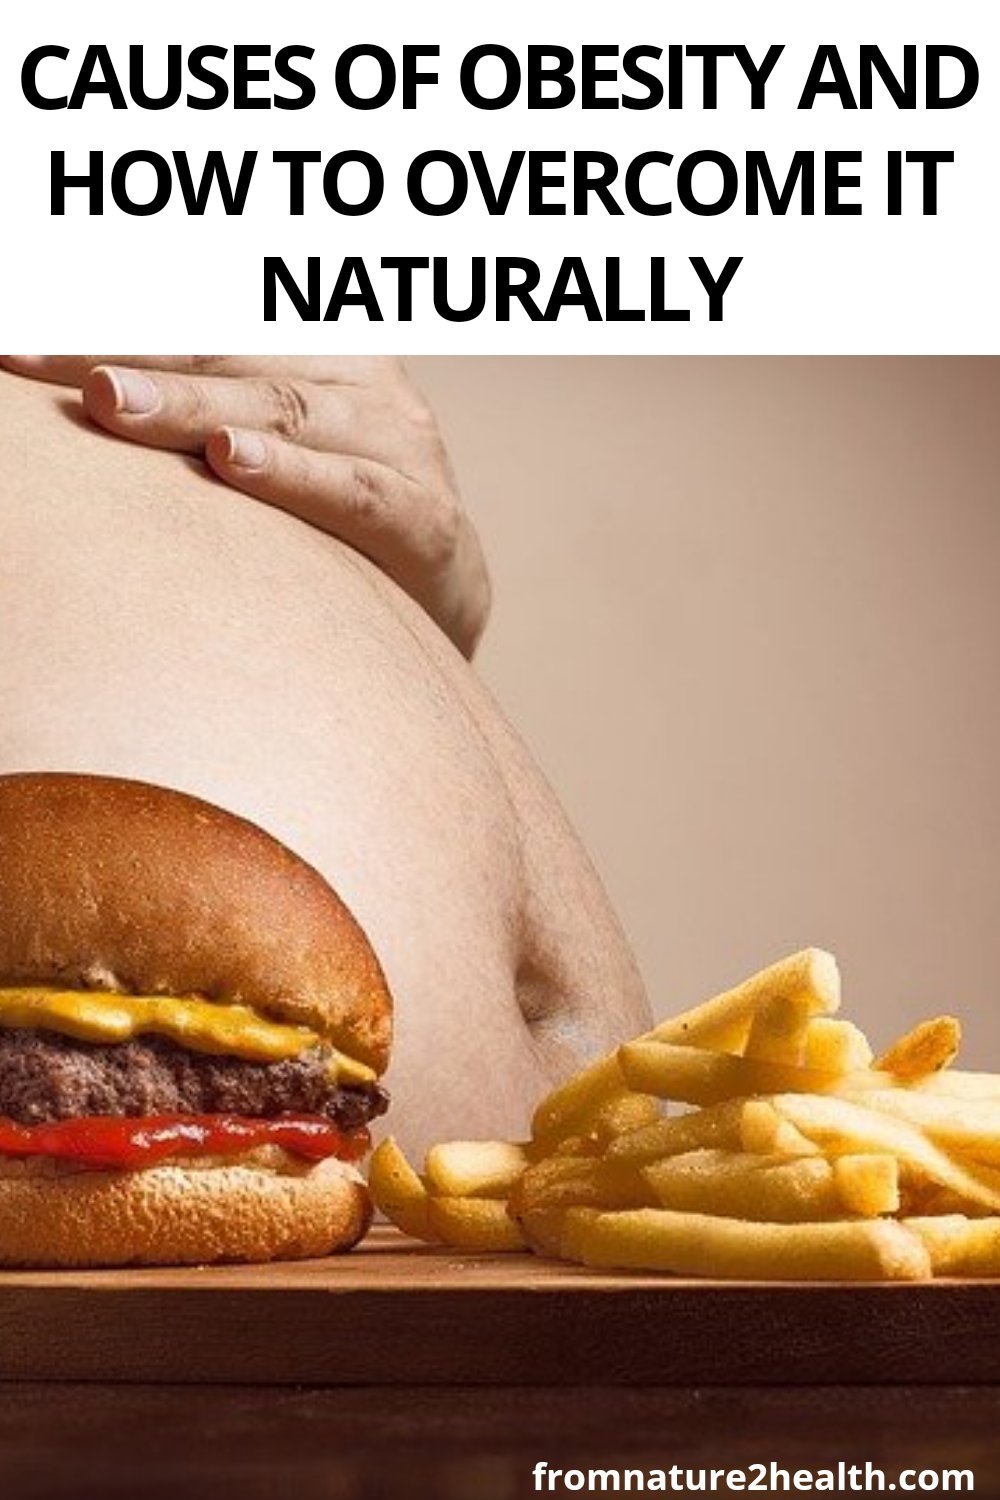 Causes of Obesity and How to Overcome It Naturally